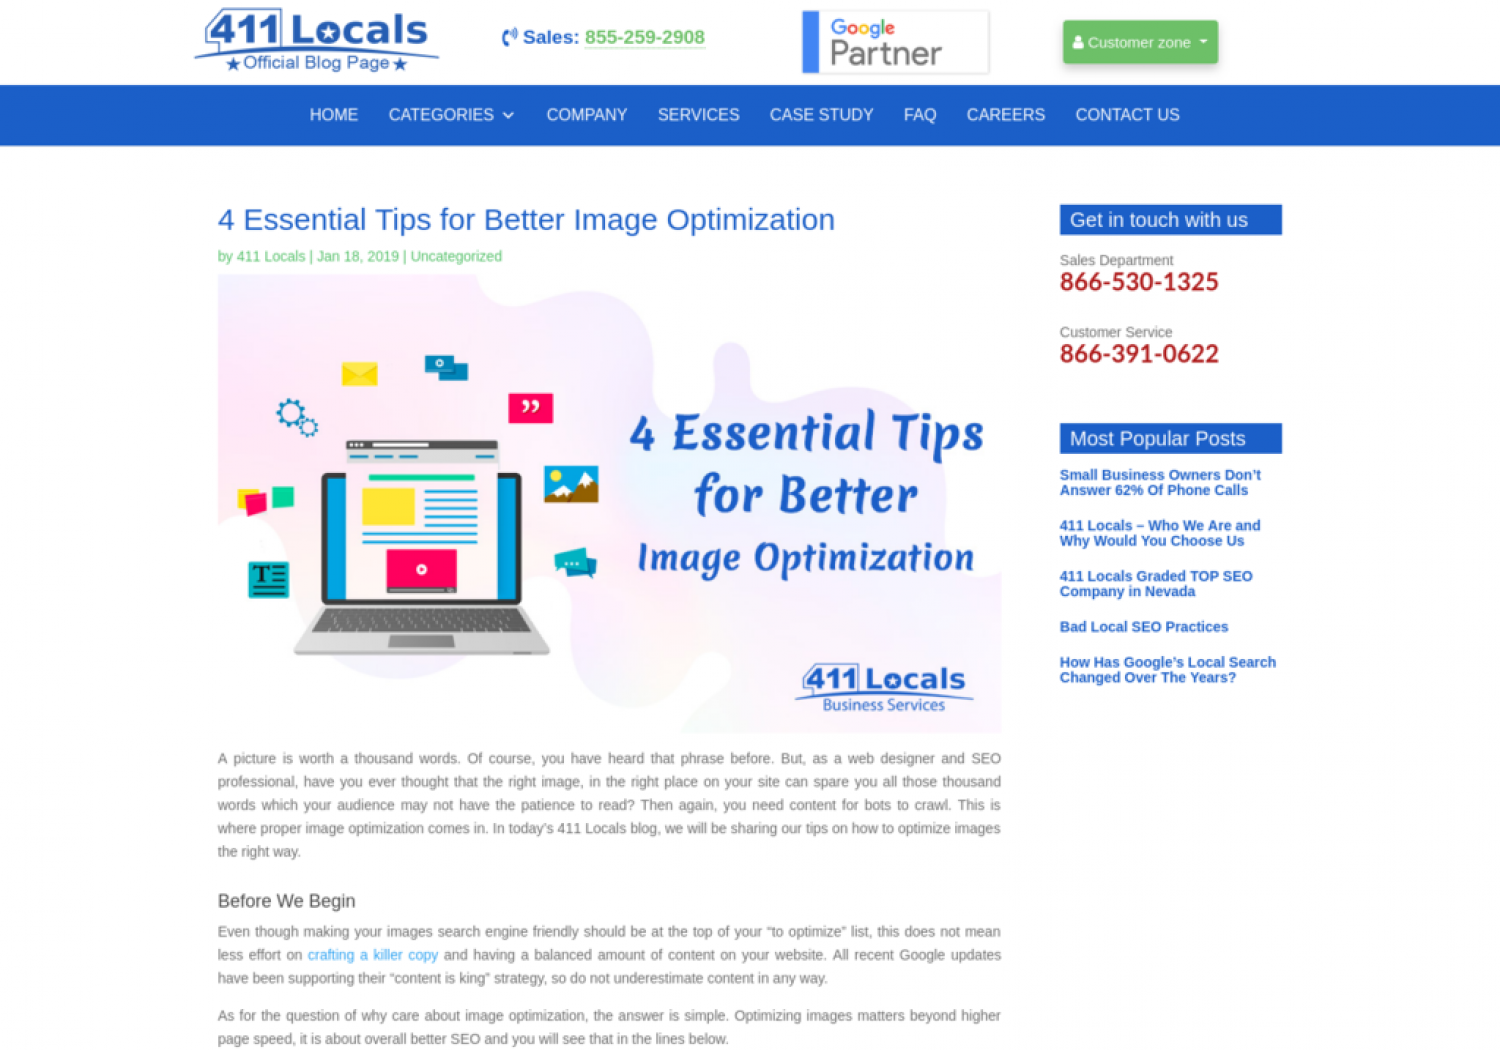 4 Essential Tips for Better Image Optimization Infographic